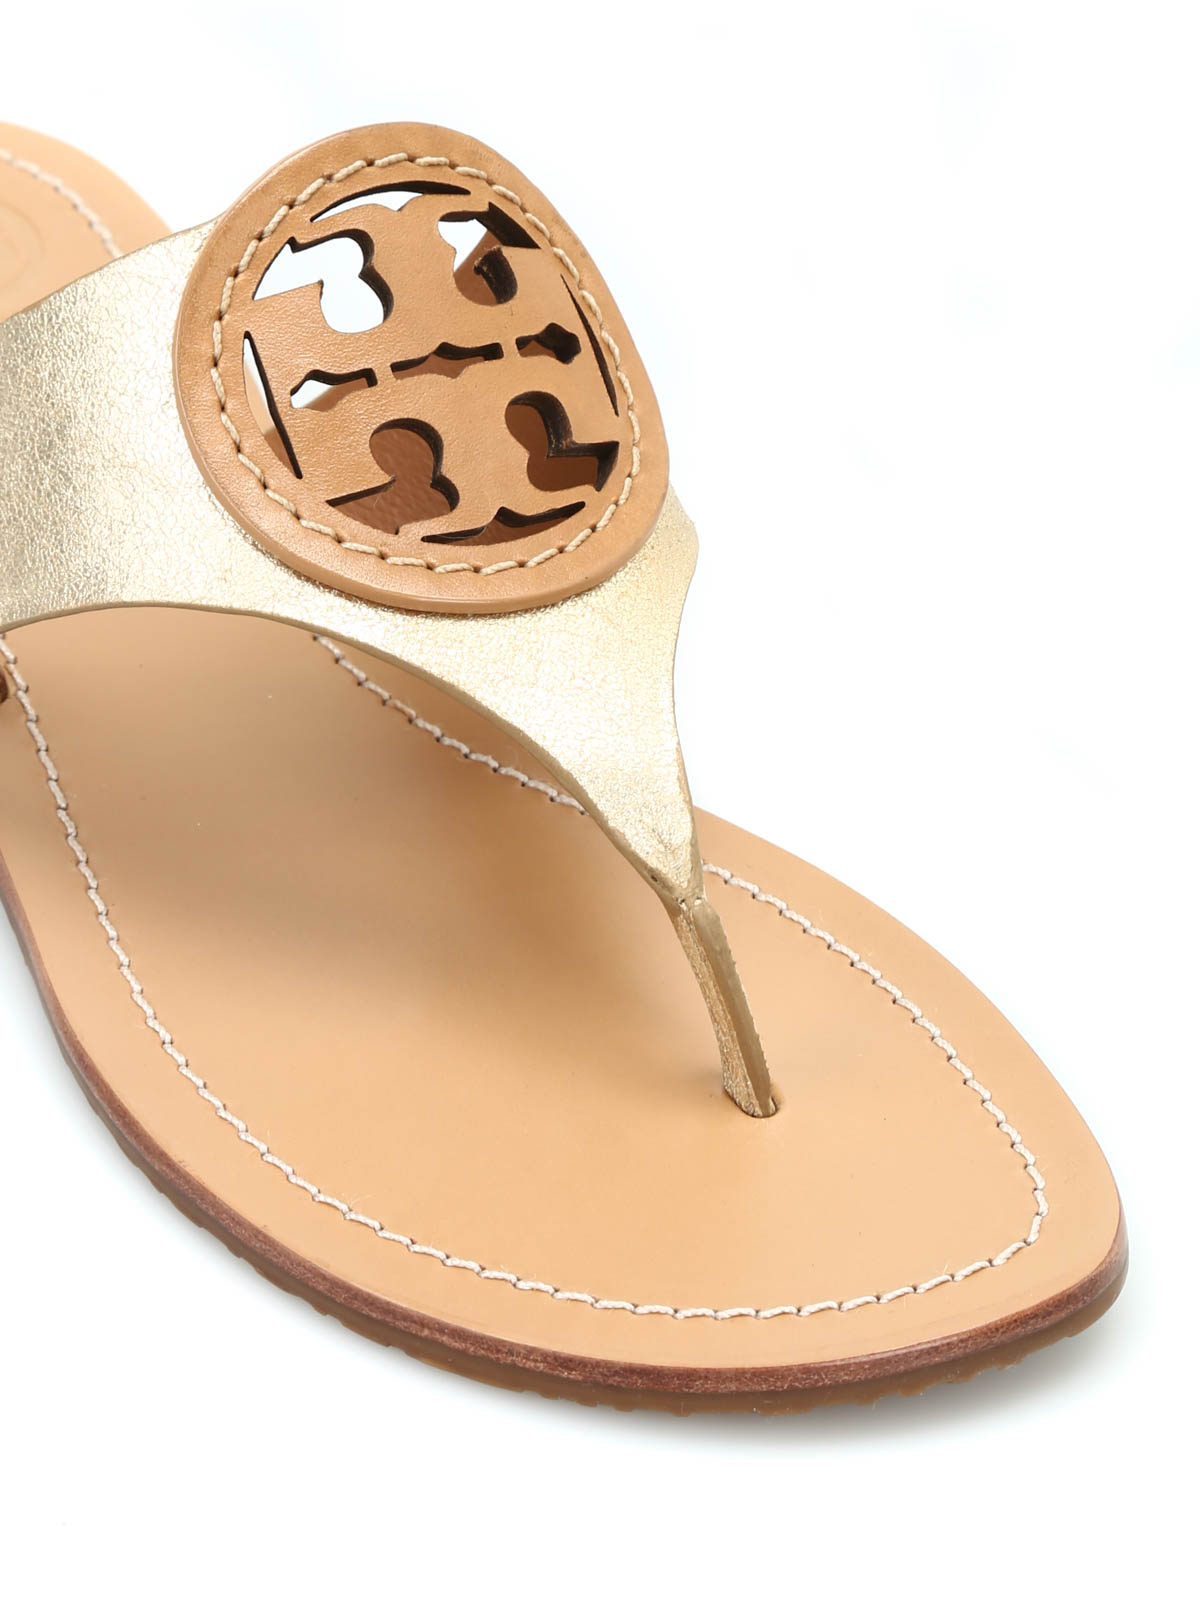 4beff65675108f Tory Burch - Louisa leather thong sandals - flip flops - 22158537 058